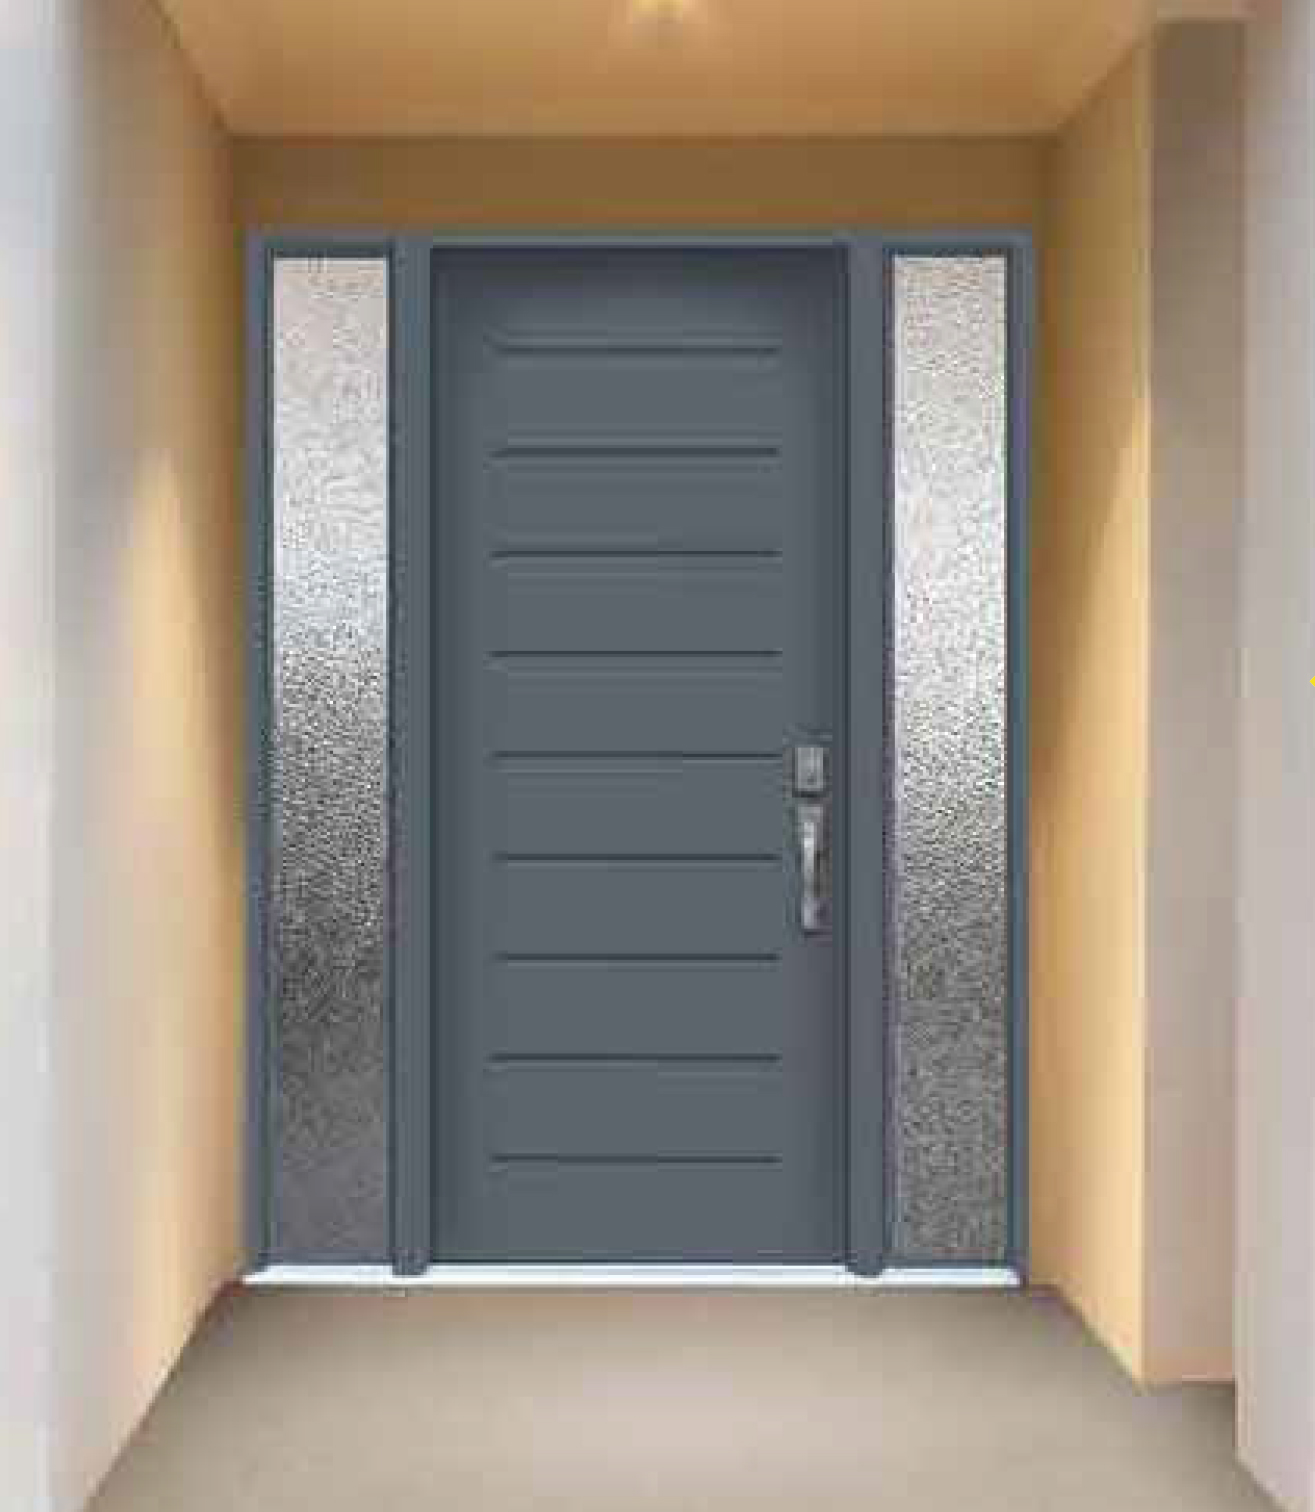 Modern contemporary front entry door design collection for Exterior glass door designs for home